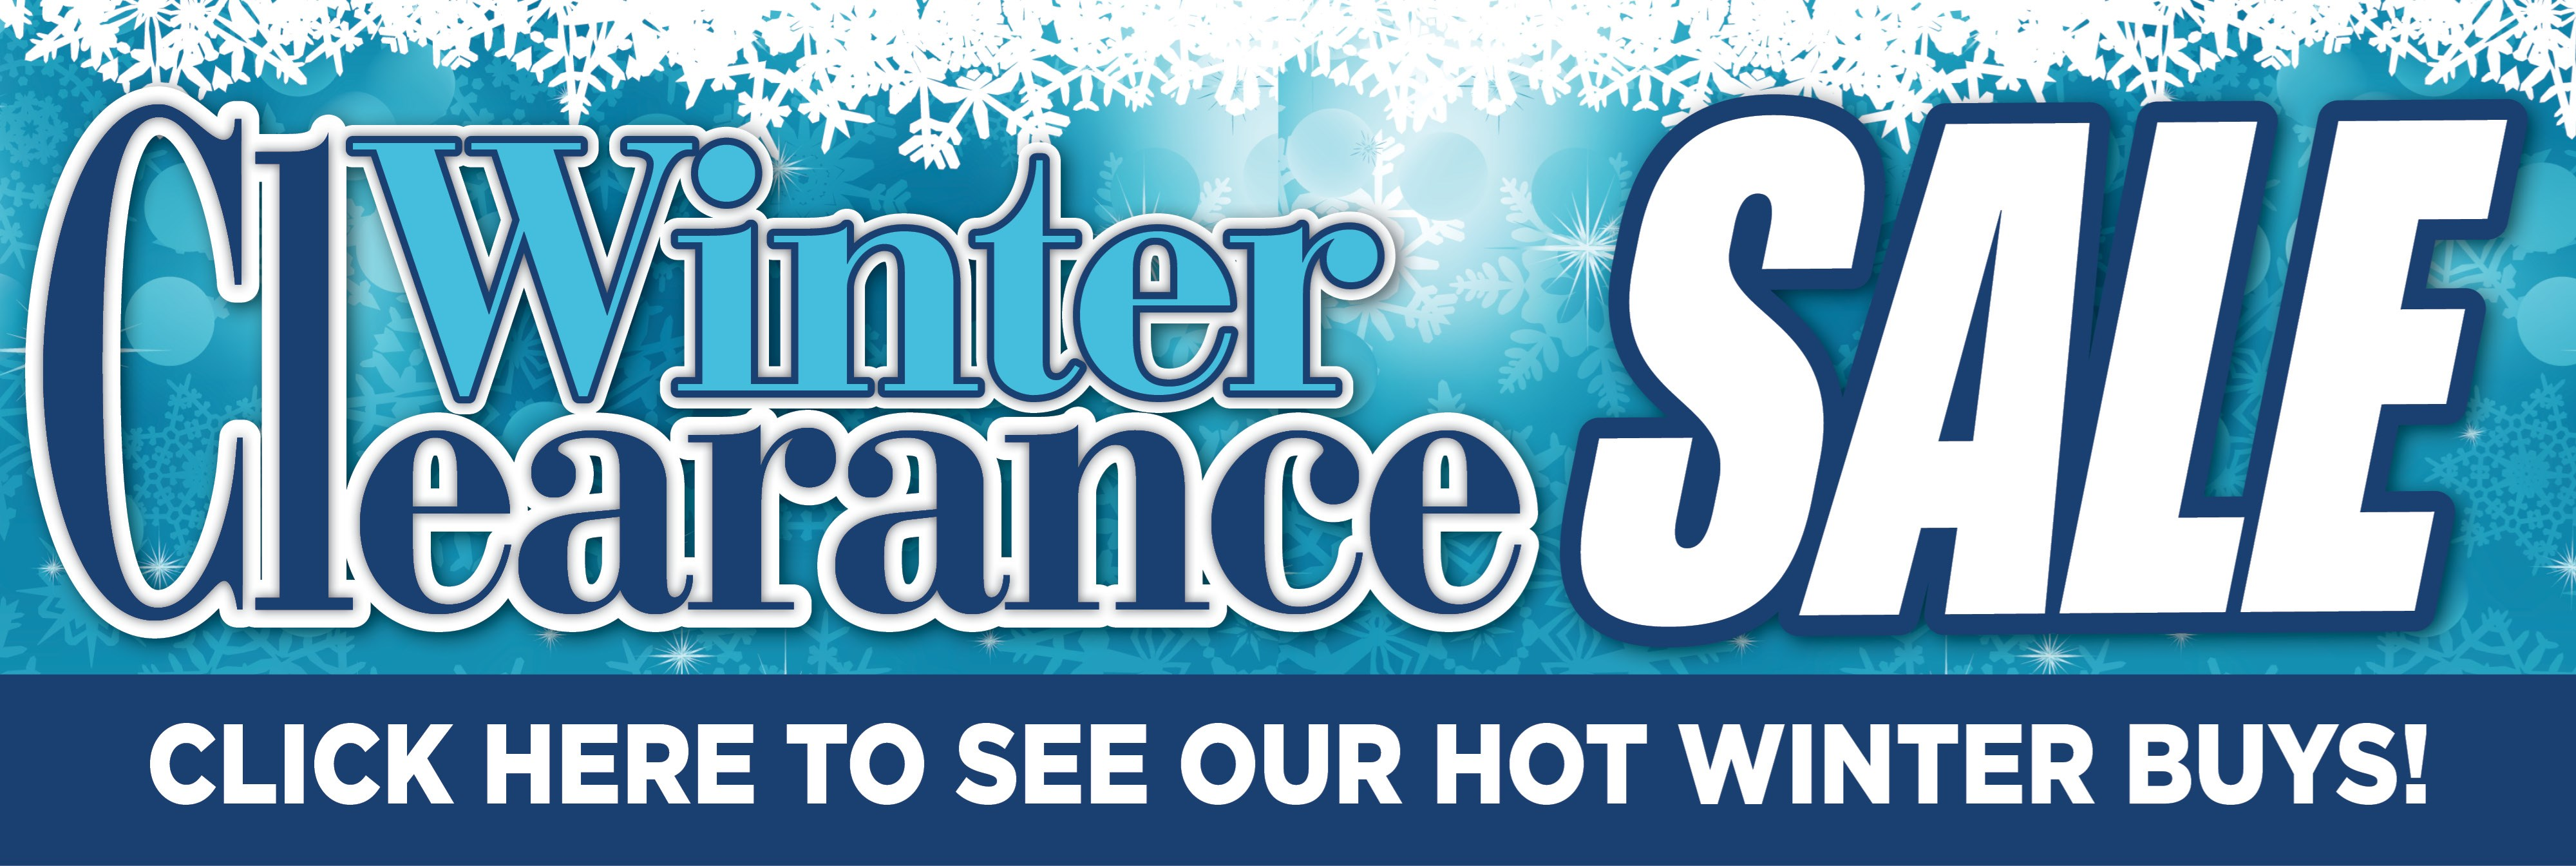 Winter Clearance Going On Now!